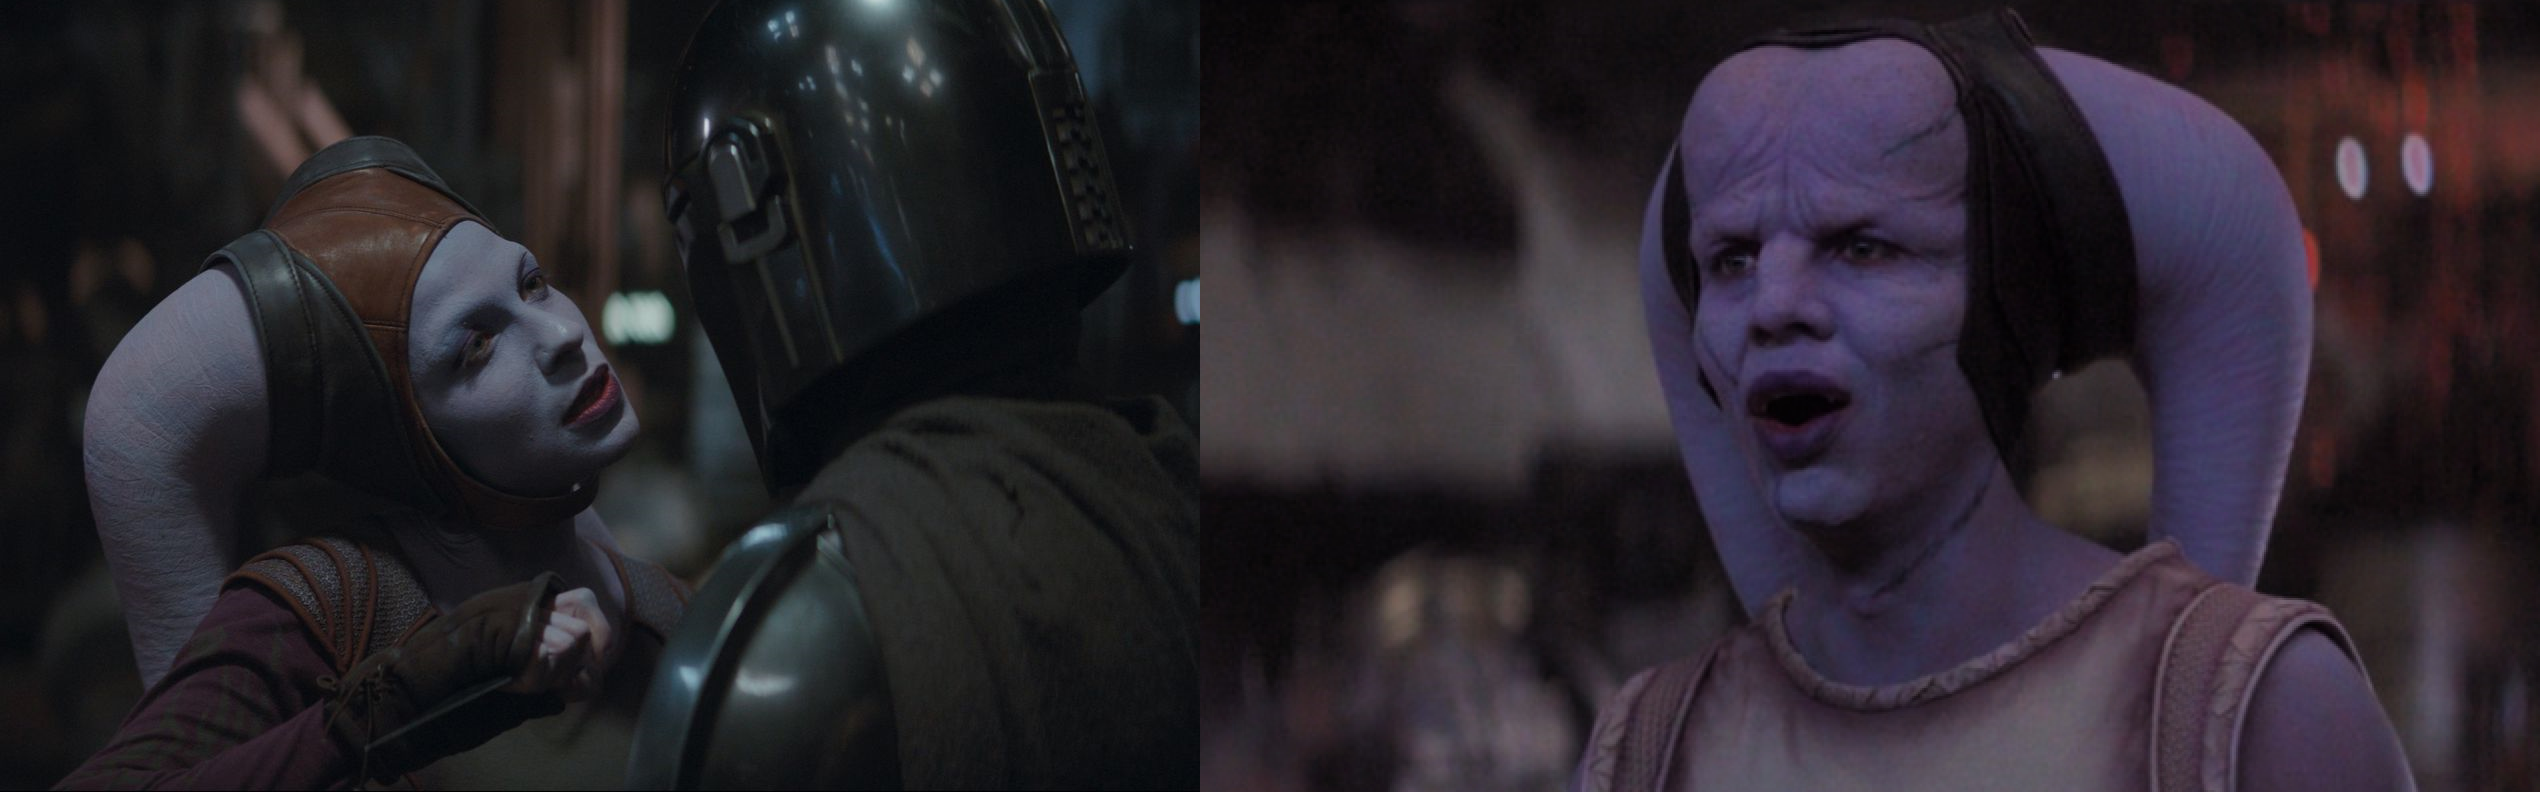 on the left, an image of Natalie Tena as Xian & the Mandalorian. On the right, Ismael Cruz Cordova as Qin.